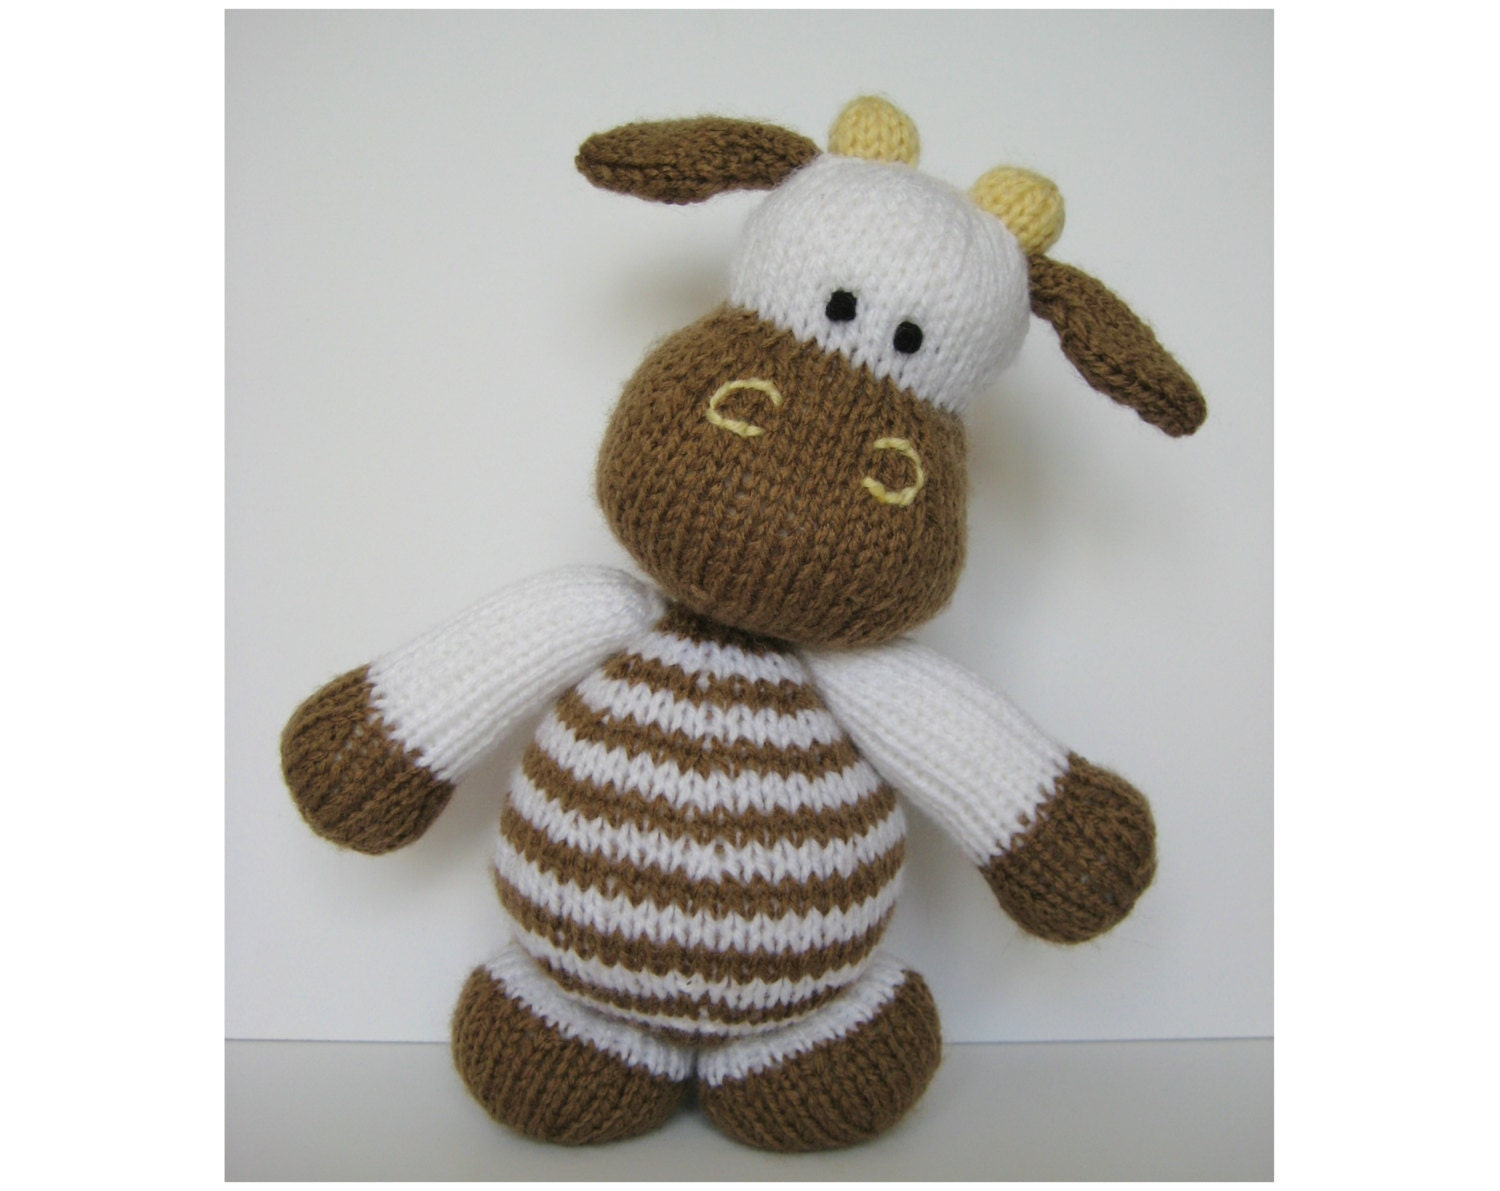 Knitting Pattern Cow Toy : Milkshake the Cow toy knitting pattern by fluffandfuzz on Etsy